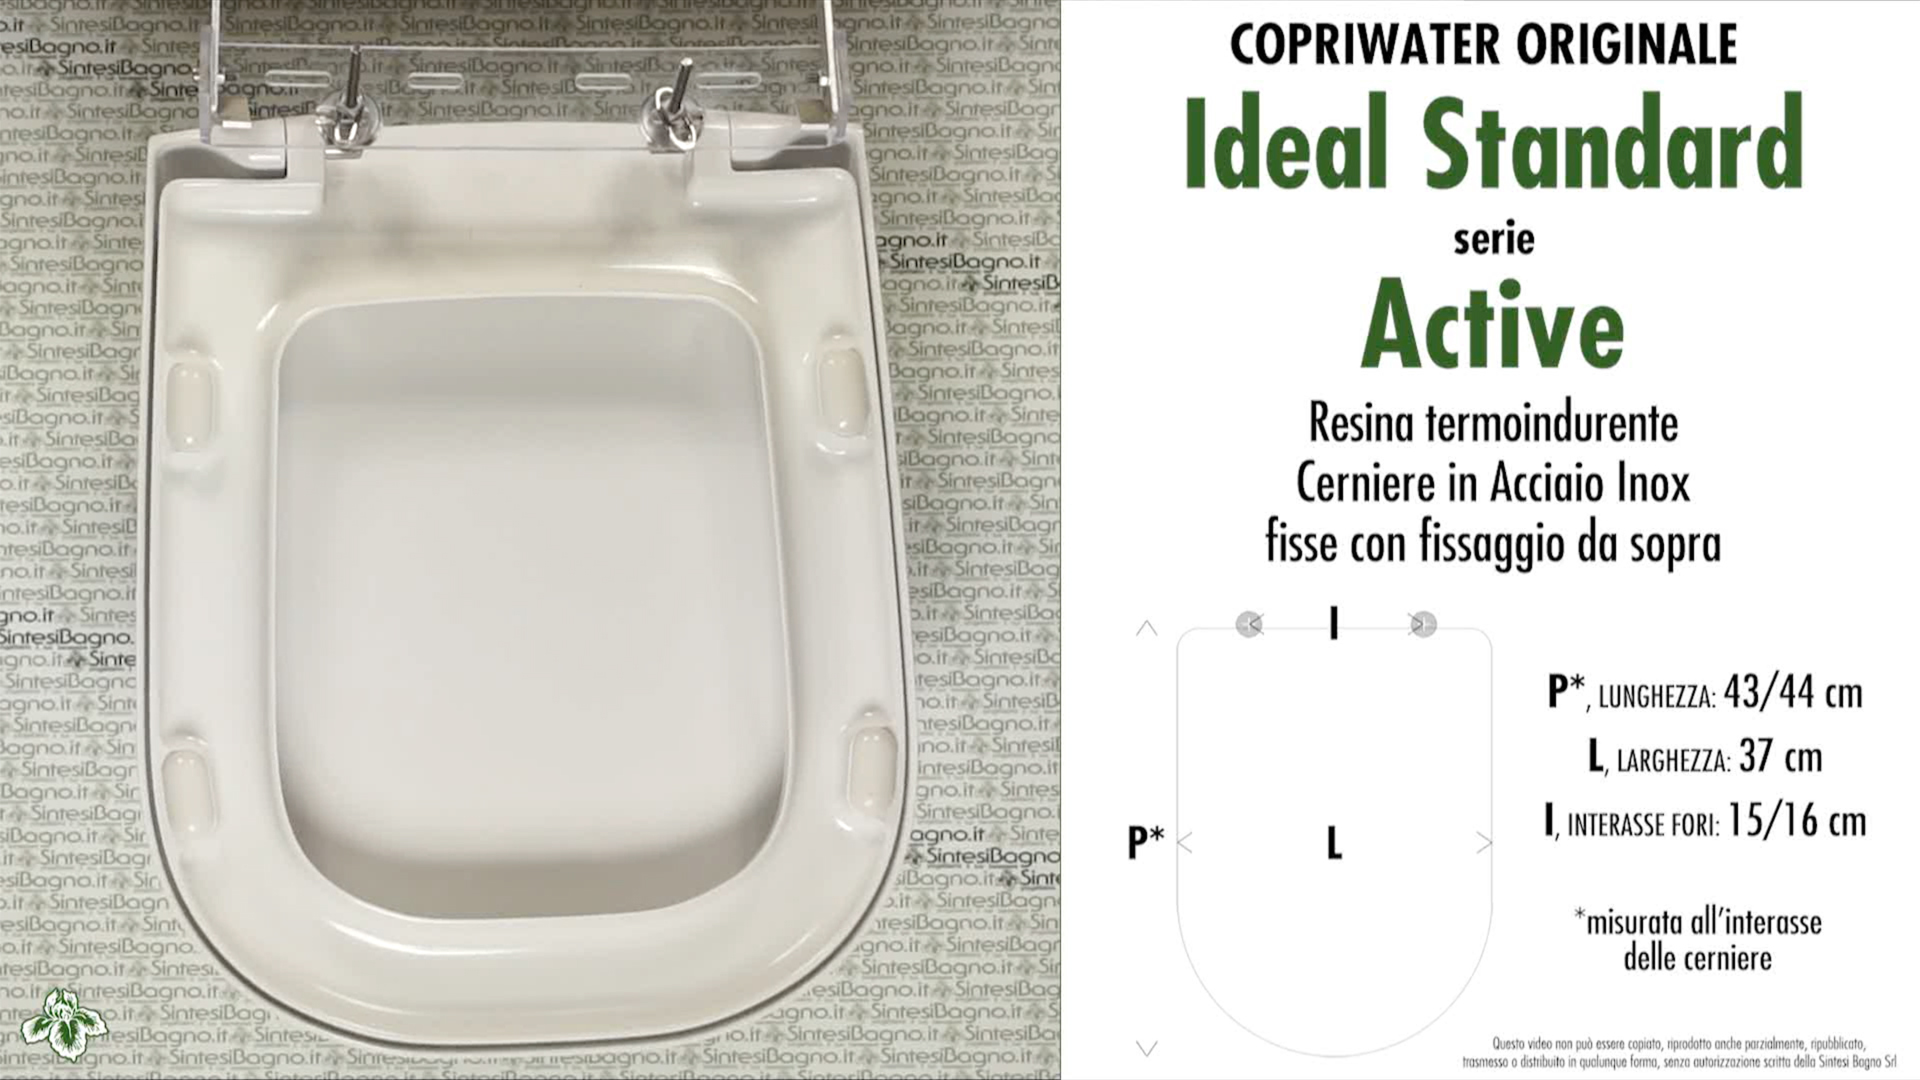 Copriwater per wc active ideal standard ricambio for Misure copriwater ideal standard